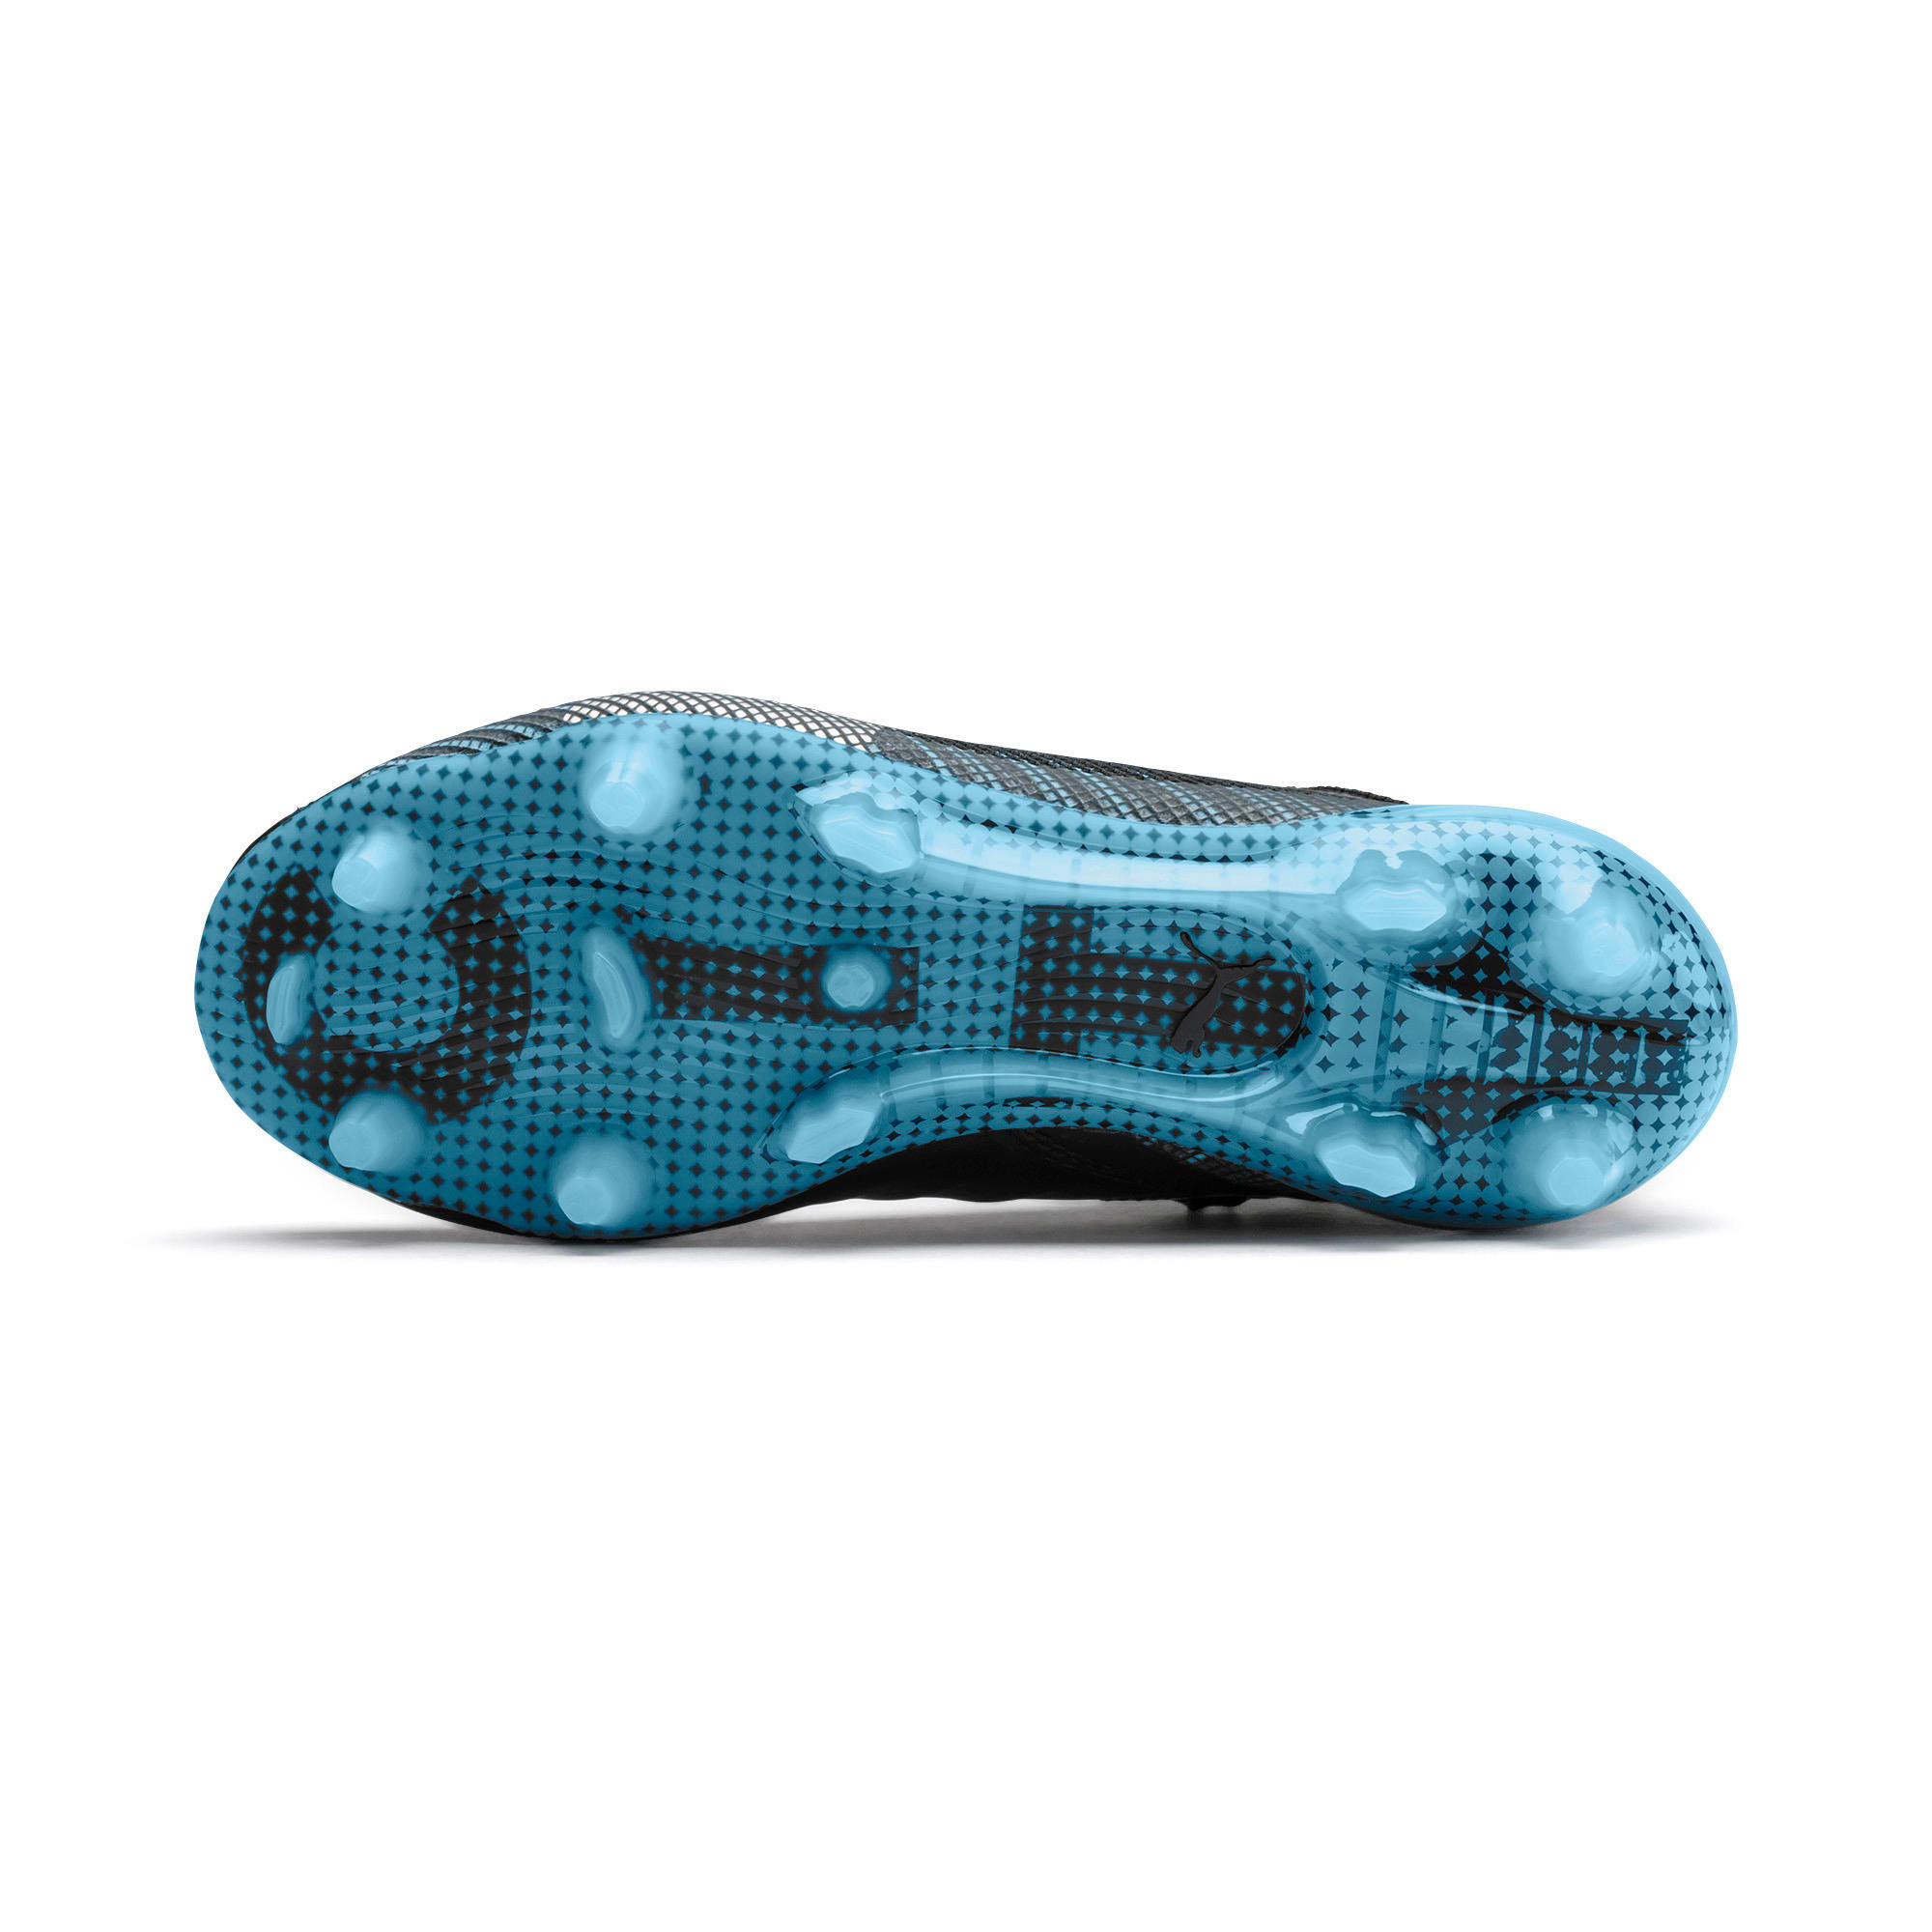 Thumbnail 4 of PUMA ONE 5.1 City Youth Football Boots, Black-Sky Blue-Puma White, medium